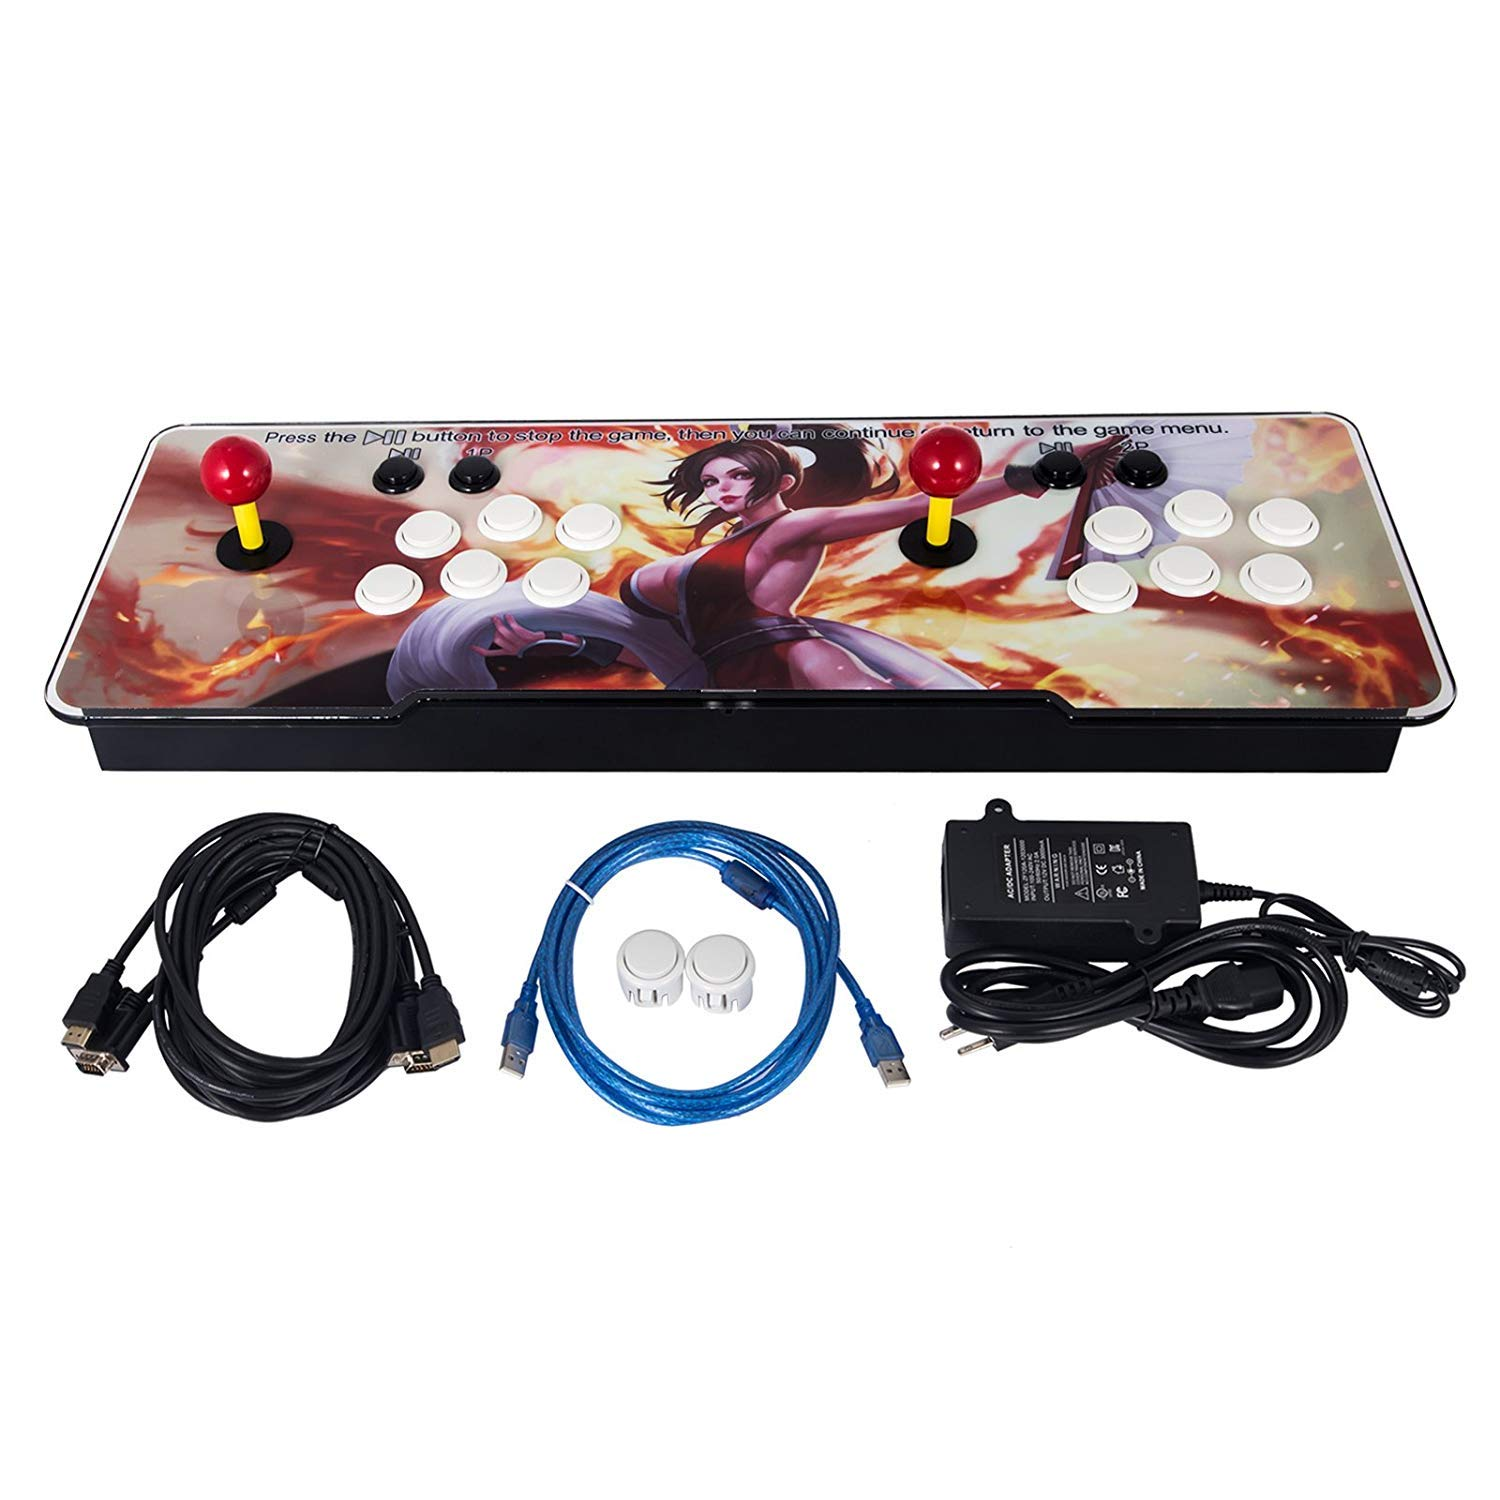 Happybuy 1500 Classic Arcade Game Machine 2 Players Pandoras Box 9s 1280x720 Full HD Video Game Console with Arcade Joystick Support HDMI VGA Output by Happybuy (Image #2)